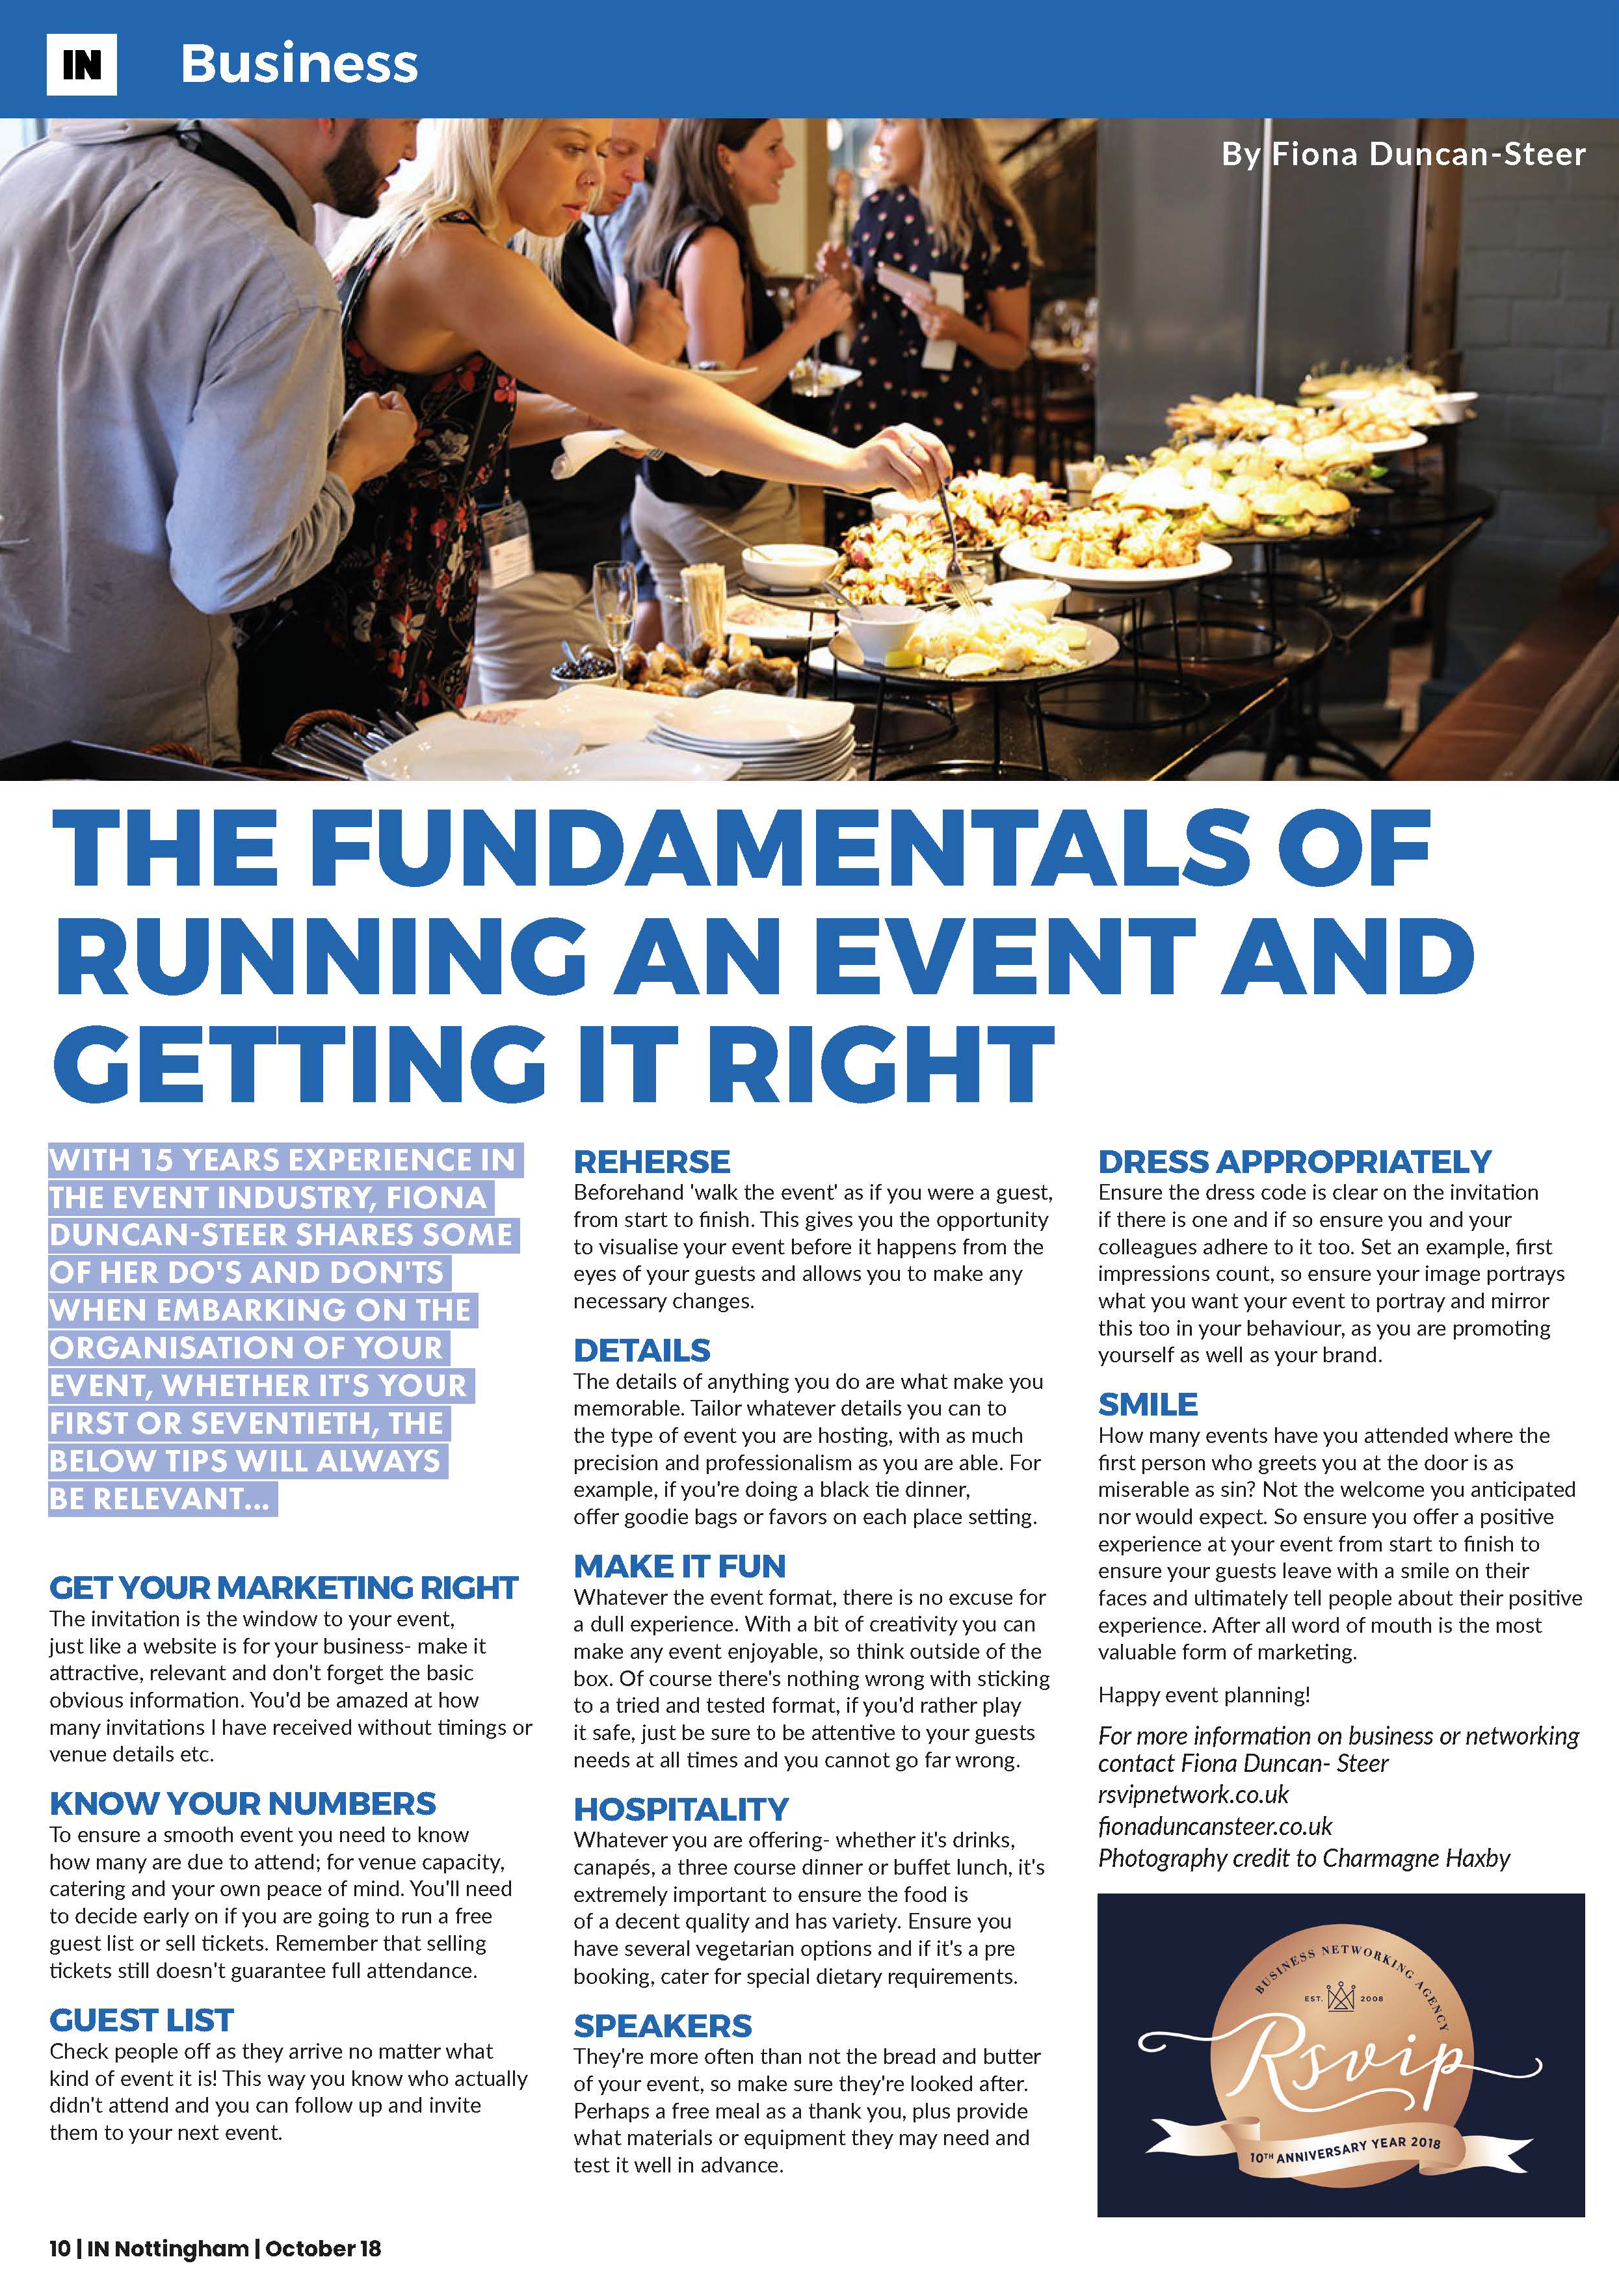 The Fundamentals of running an event and getting it right - Fiona Duncan-Steer